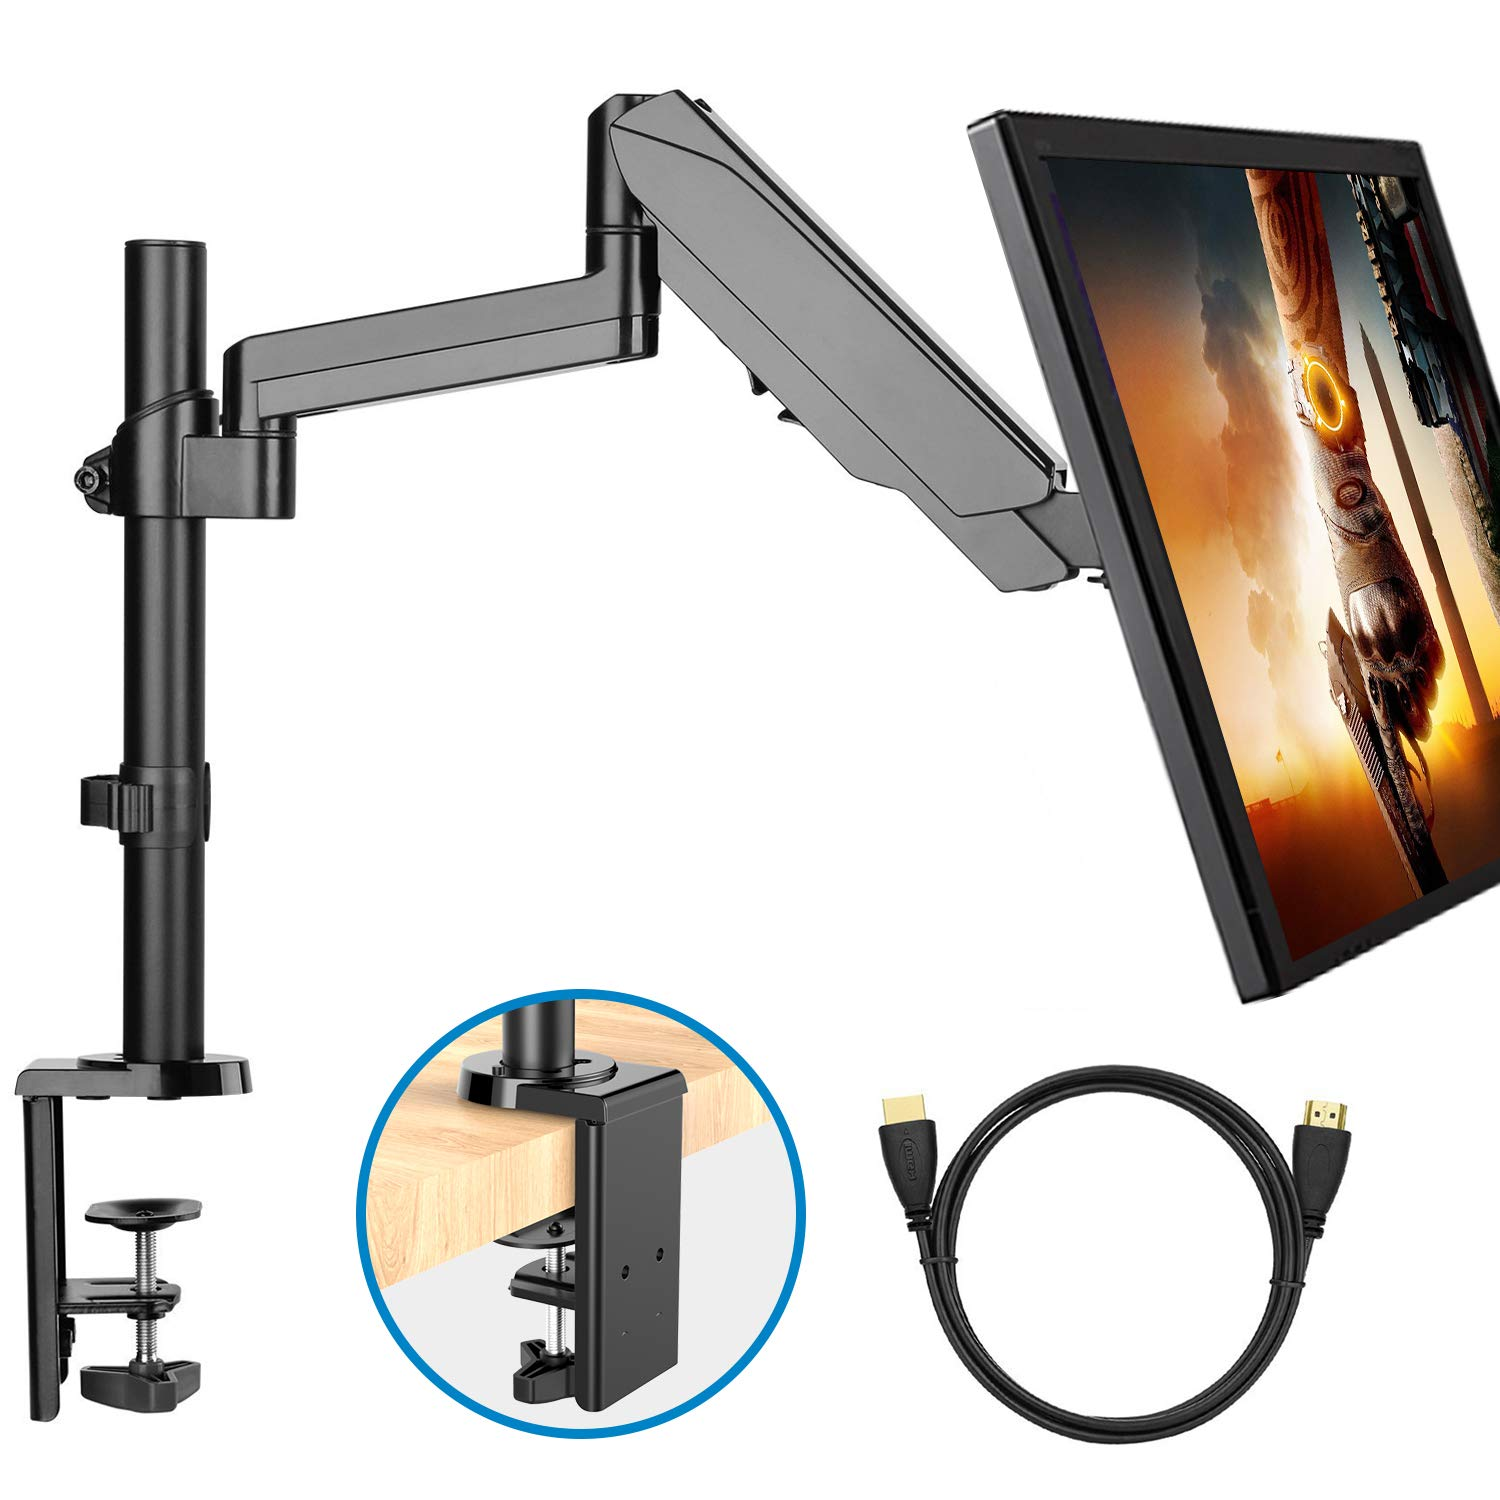 Monitor Mount Stand - Adjustable Single Arm Desk Vesa Mount with Clamp, Grommet Base, HDMI Cable for LCD LED Screens Up to 32 Inch, Gas Spring Articulating Full Motion Arm Holds Up to 17.6Lbs by HUANUO